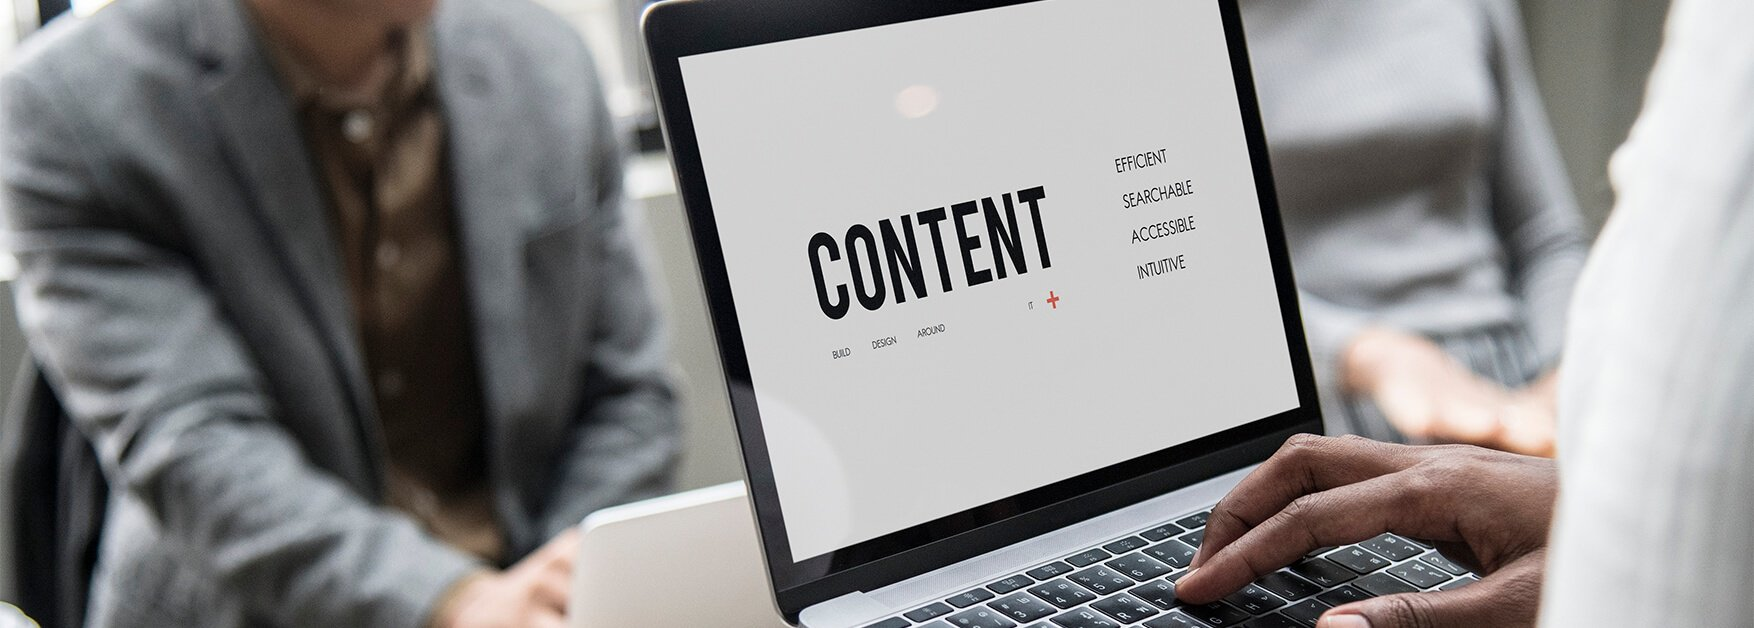 Top Content Marketing Tips To Make You A Better Marketer In 2019